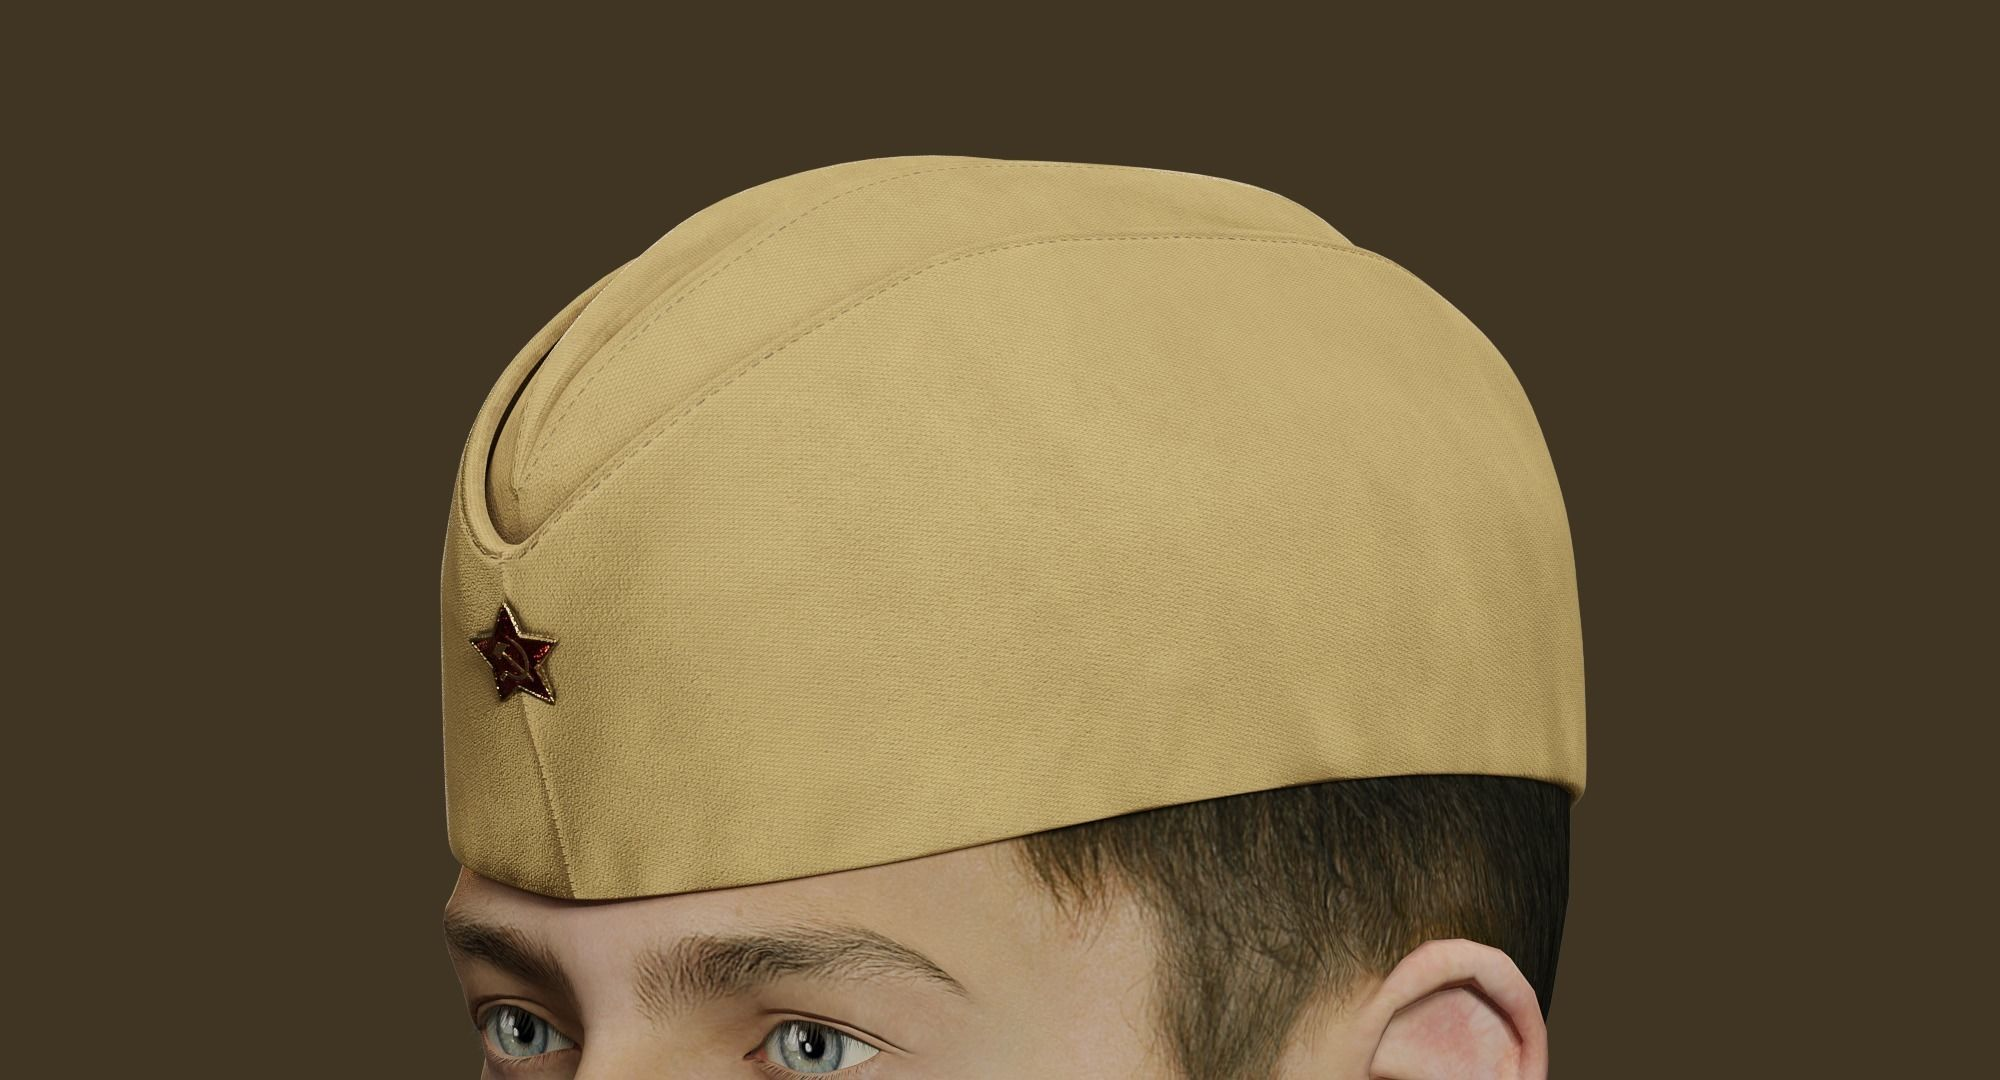 Military Soviet Soldier side cap of Infantry